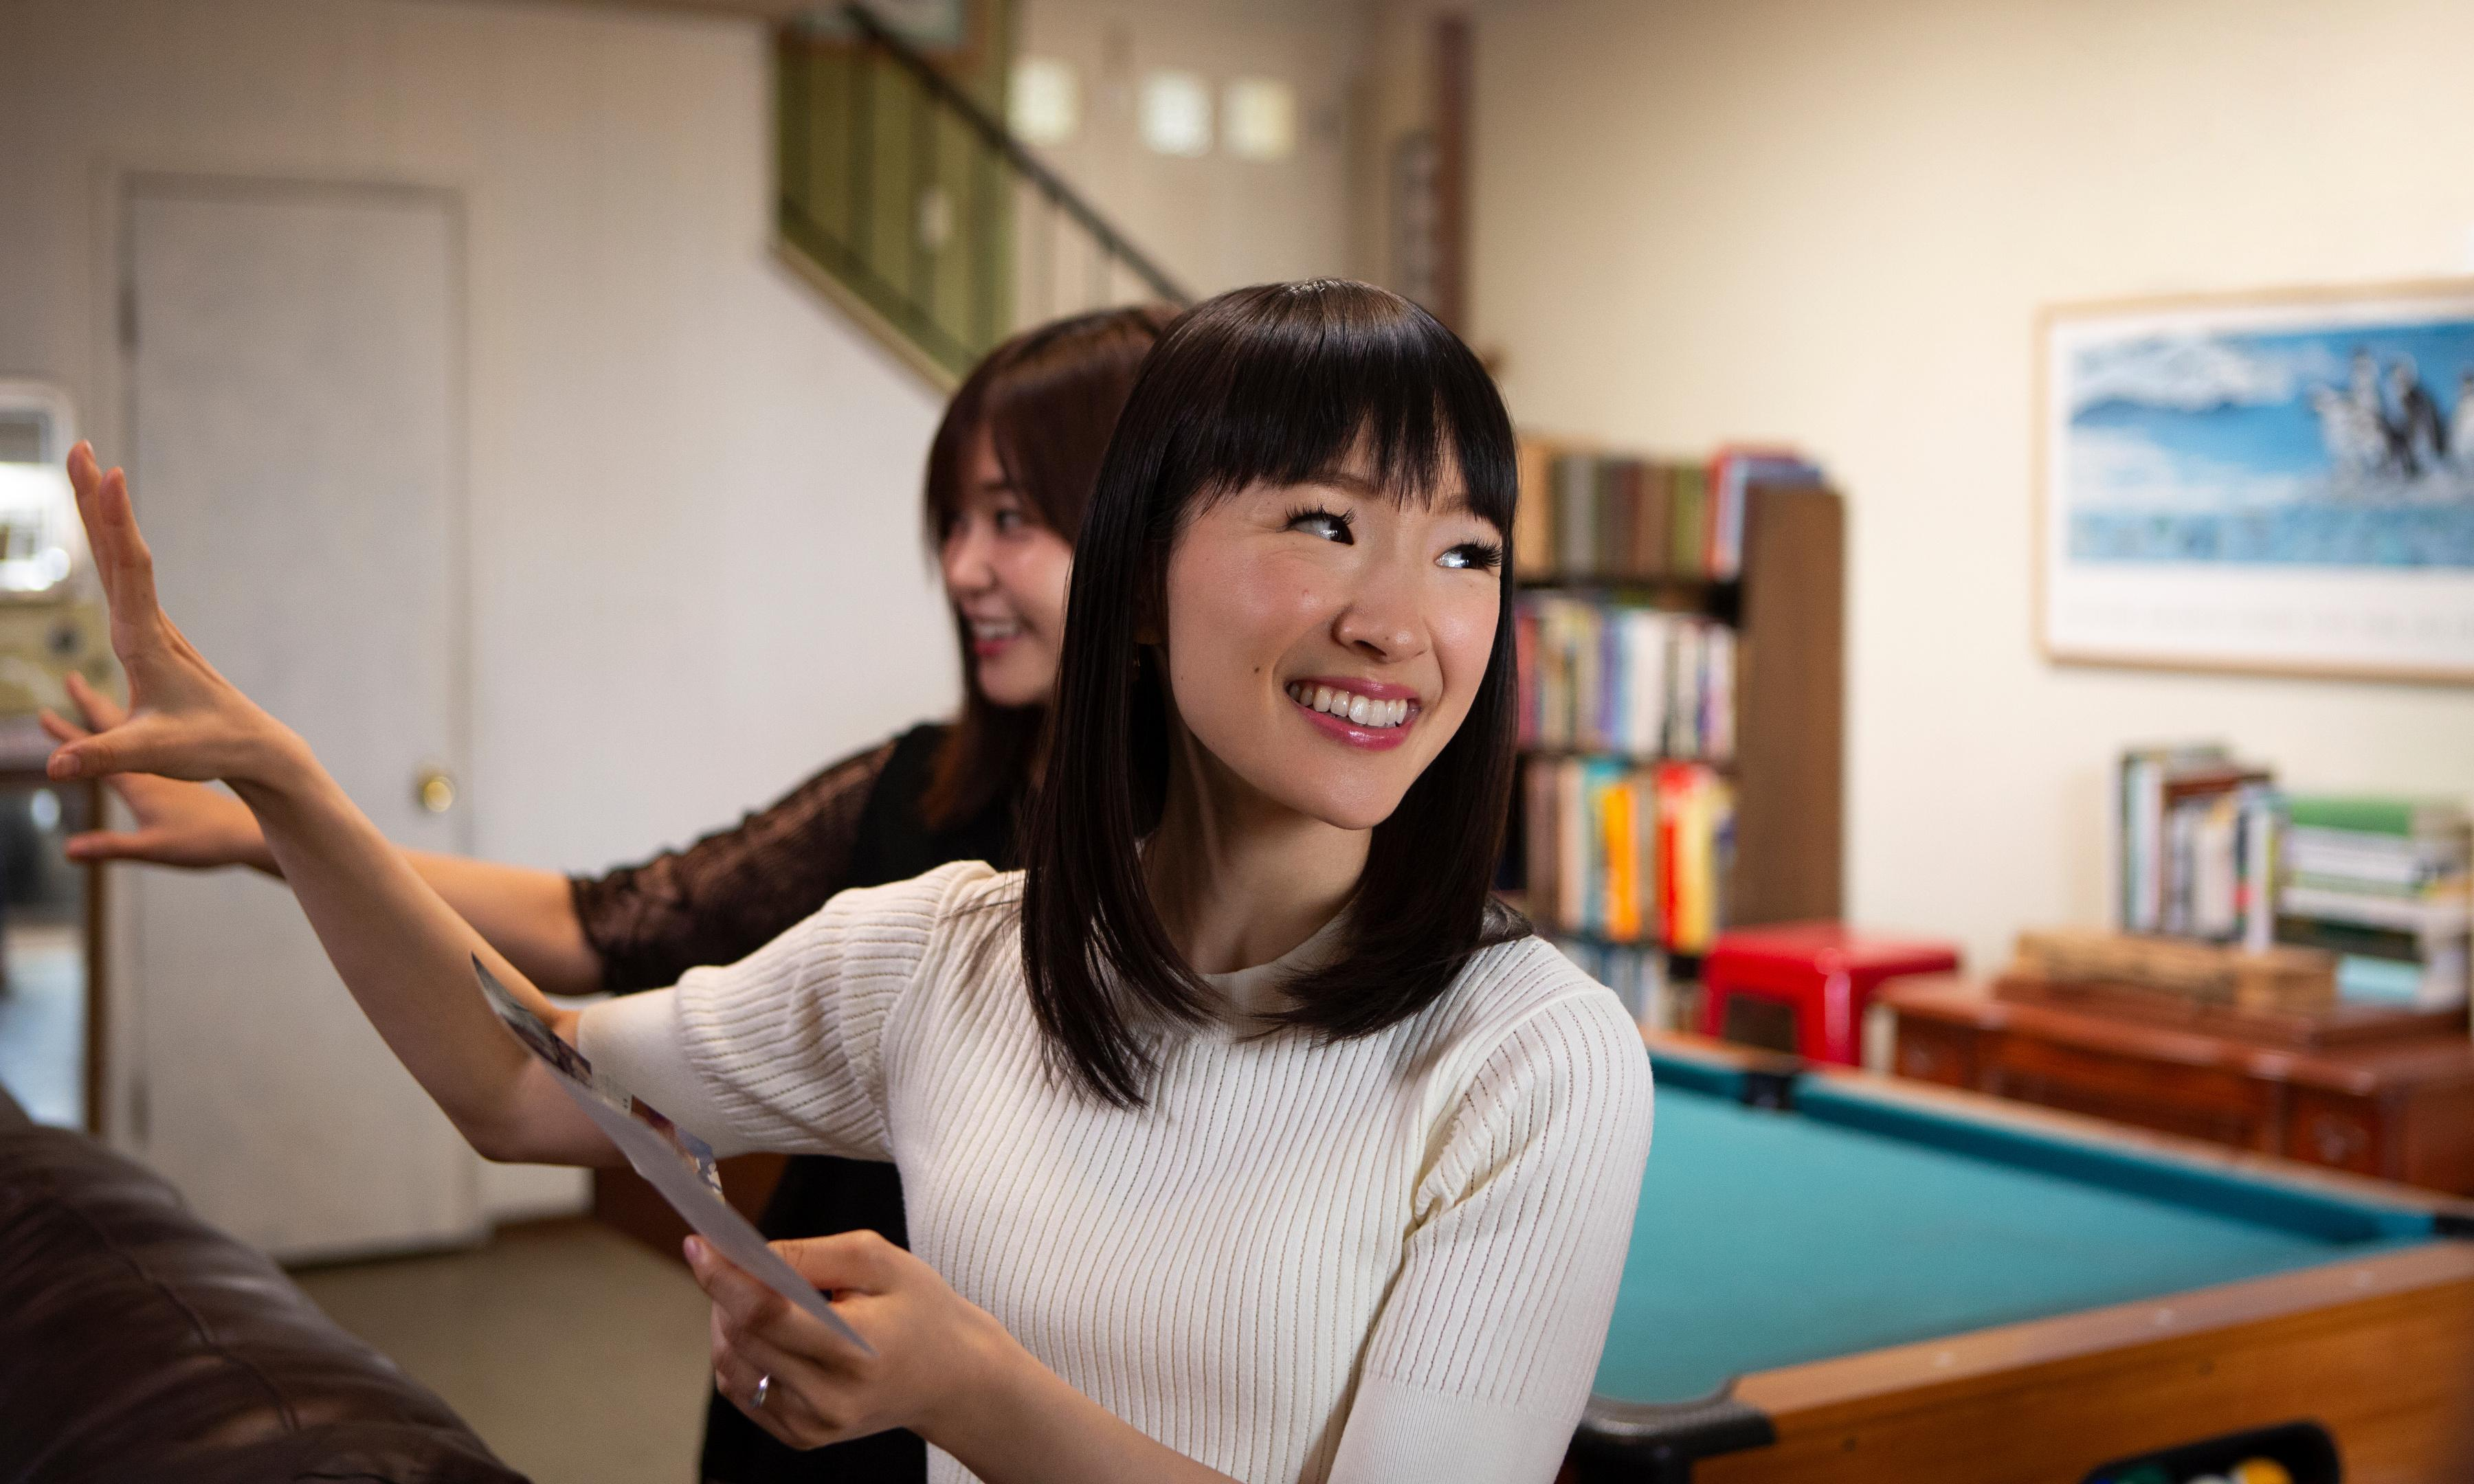 Marie Kondo calls it clutter; to me they are mementoes